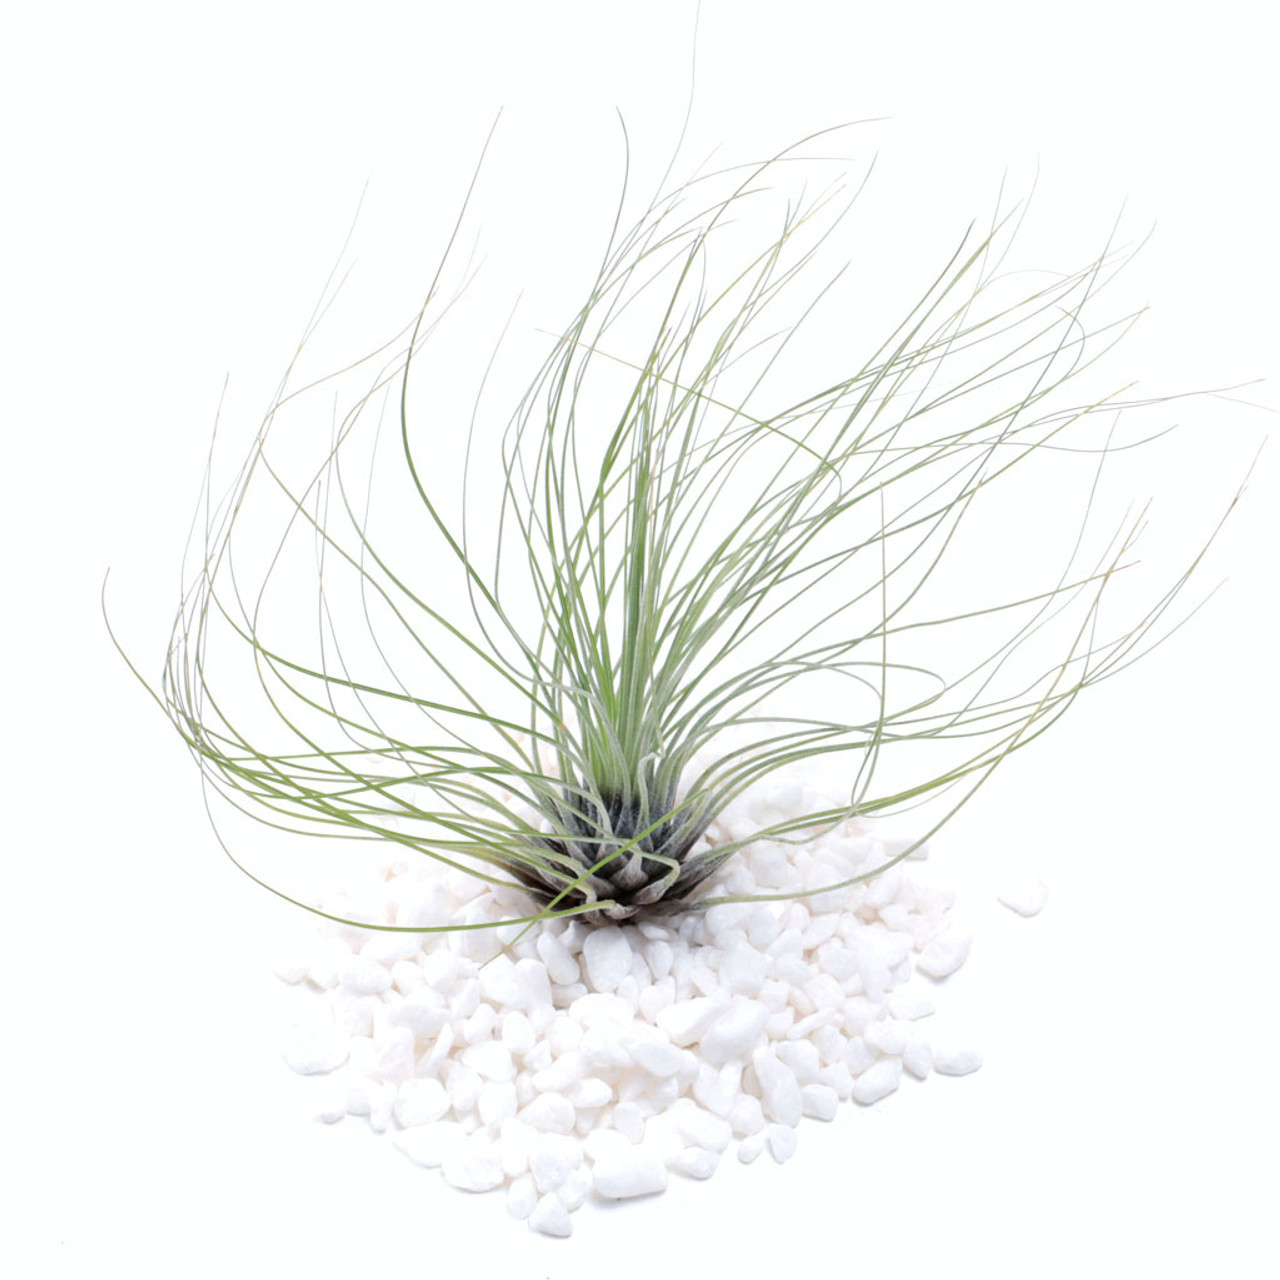 air plant tillandsia filifolia mountain crest gardens Easy Fish Tank Plants air plant tillandsia filifolia